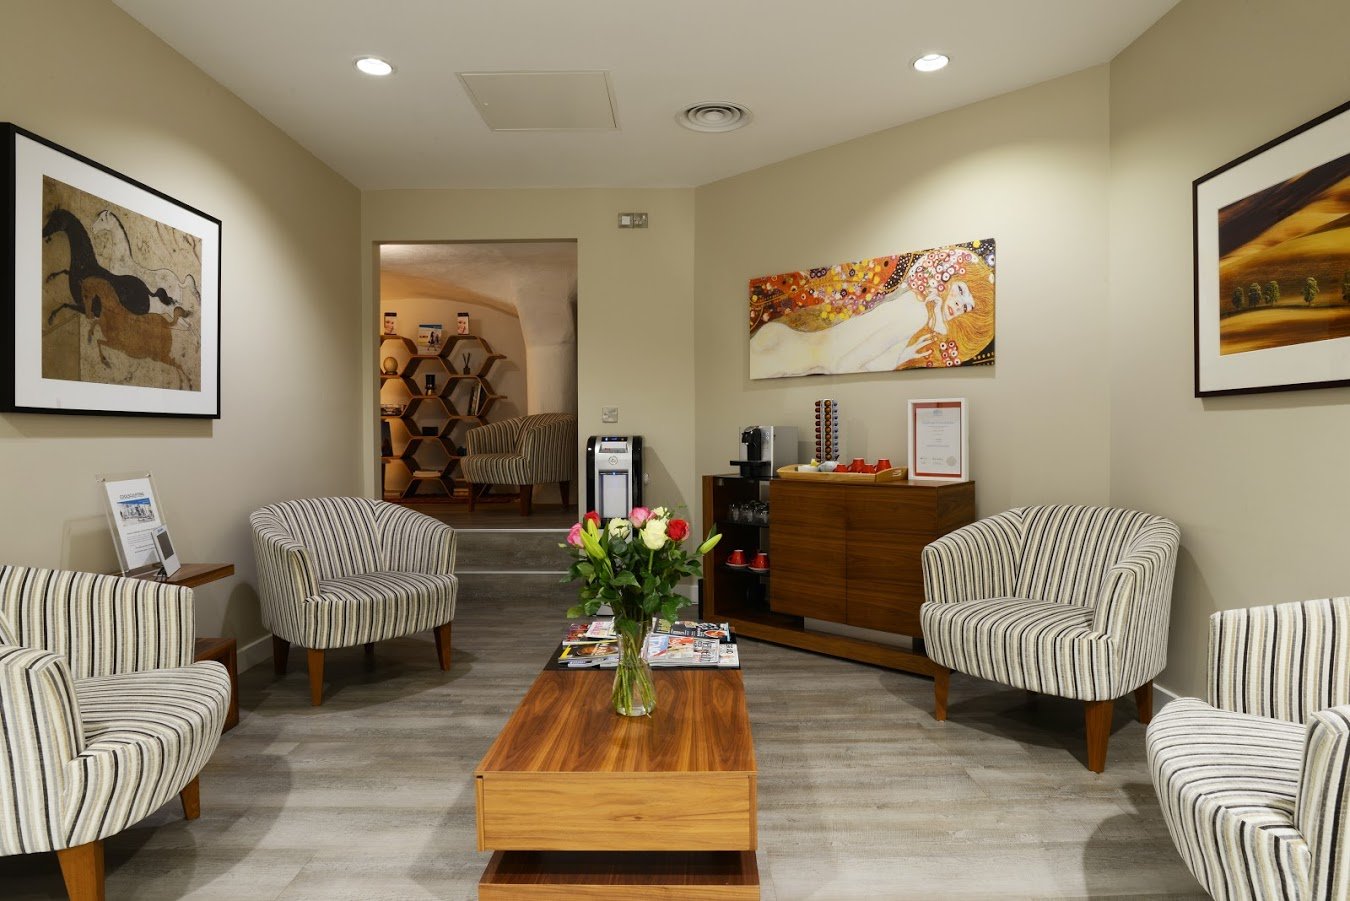 reception-seating-area-3 - Boston House Healthcare LLP - Boston House Dental Clinic